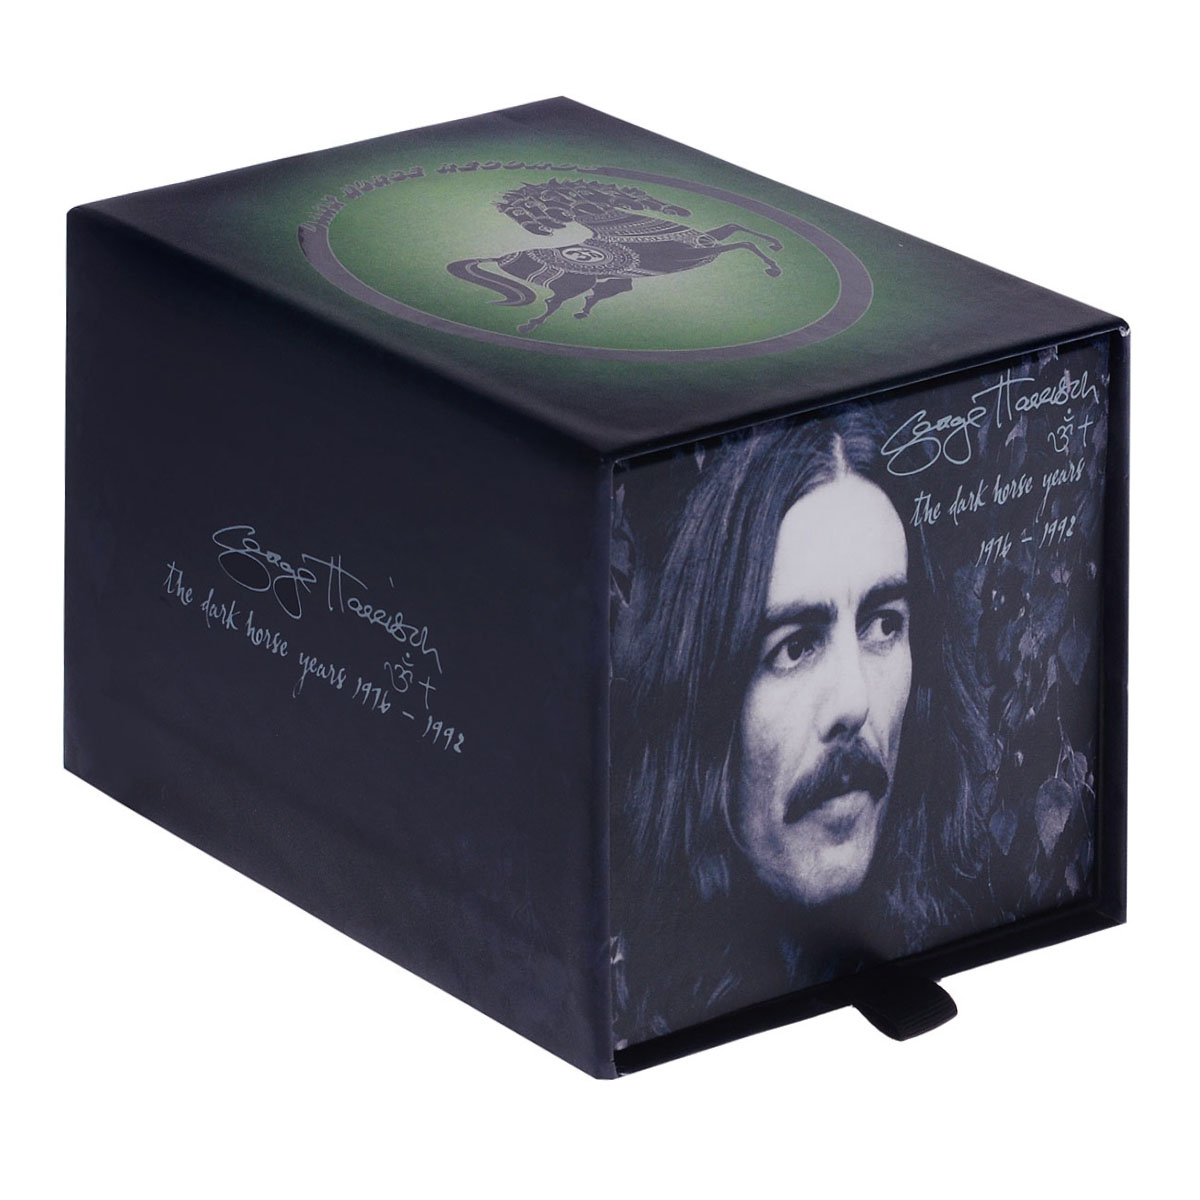 Джордж Харрисон George Harrison. The Dark Horse Years 1976-1992 (5 CD + 2 SACD + DVD) джордж харрисон george harrison early takes volume 1 lp